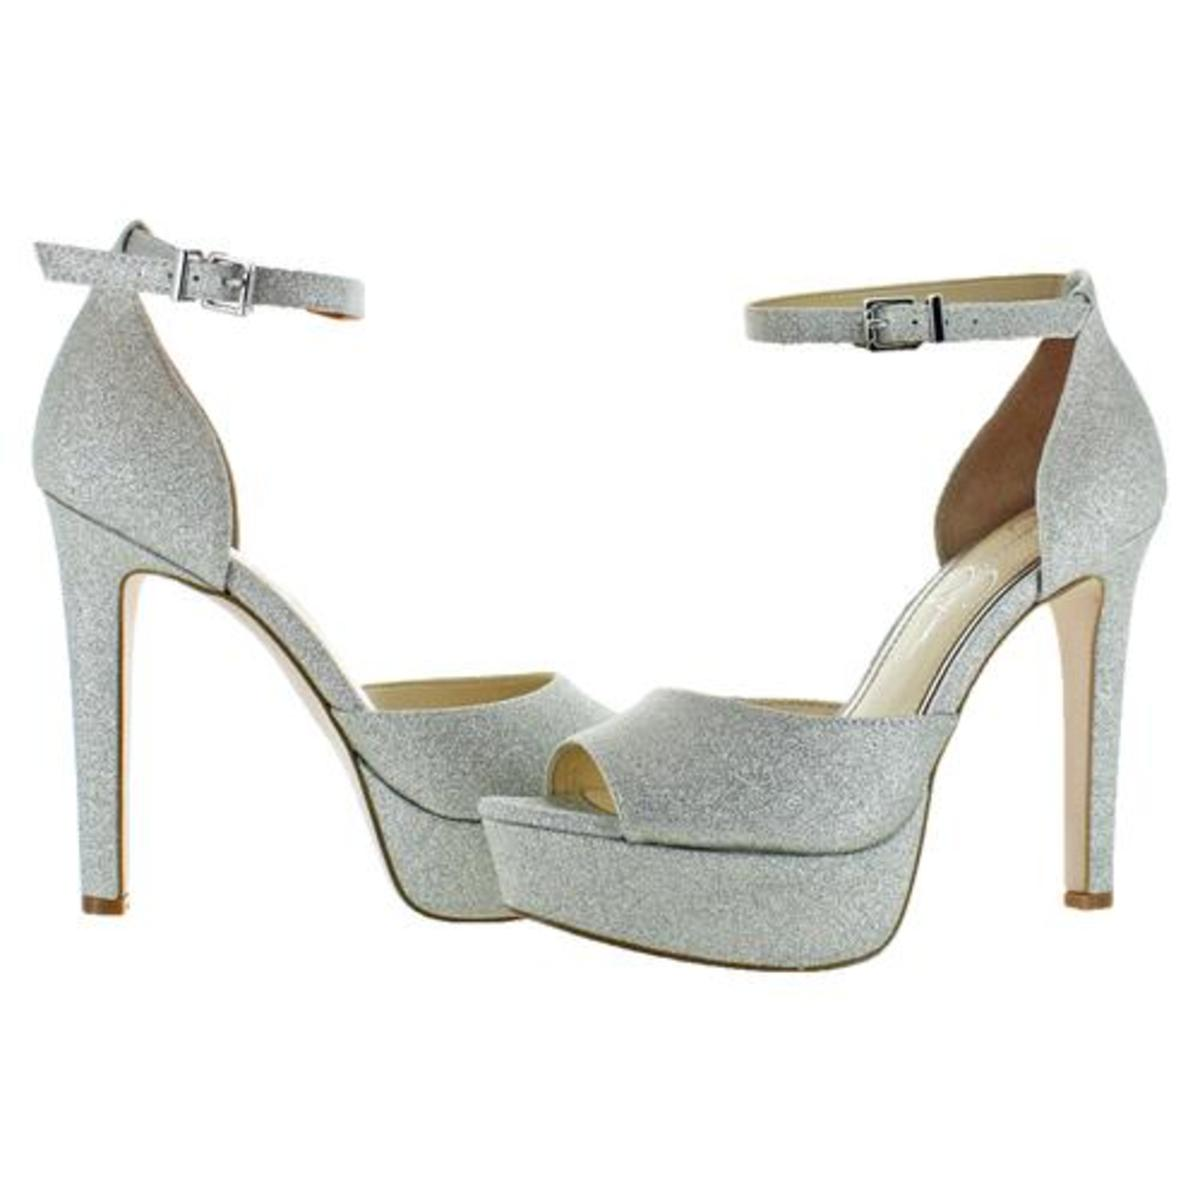 Jessica-Simpson-Women-039-s-Beeya-Ankle-Strap-Platform-Heeled-Sandals-Shoes thumbnail 11